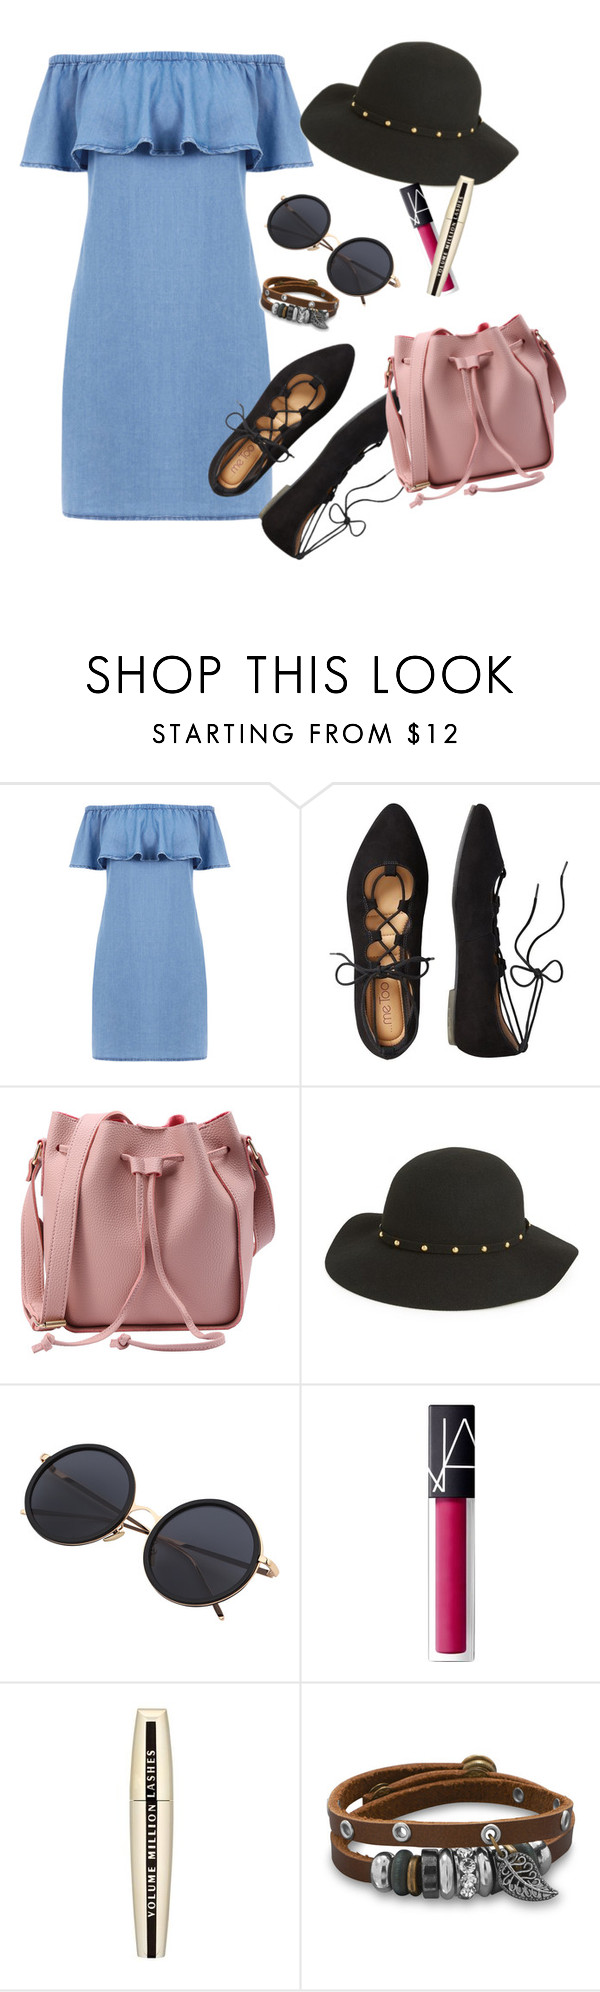 """""""❤"""" by rockgirl99 ❤ liked on Polyvore featuring Warehouse, TravelSmith, San Diego Hat Co., NARS Cosmetics, L'Oréal Paris and BillyTheTree"""